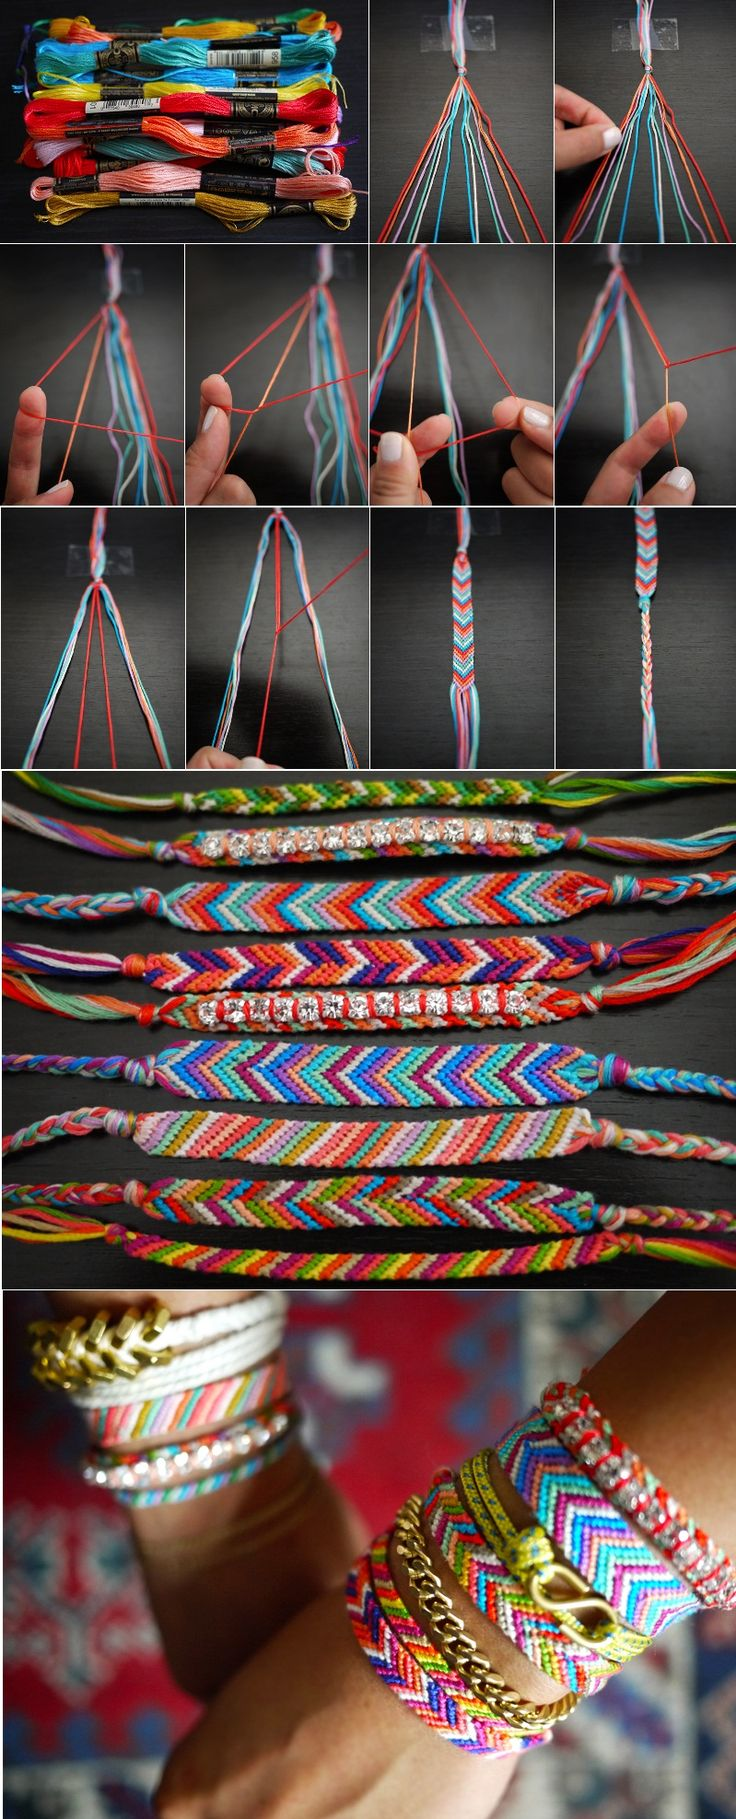 DIY friendship bracelets #friendshipbracelets #macrame #bracelets only because I have a ton of embroidery floss.